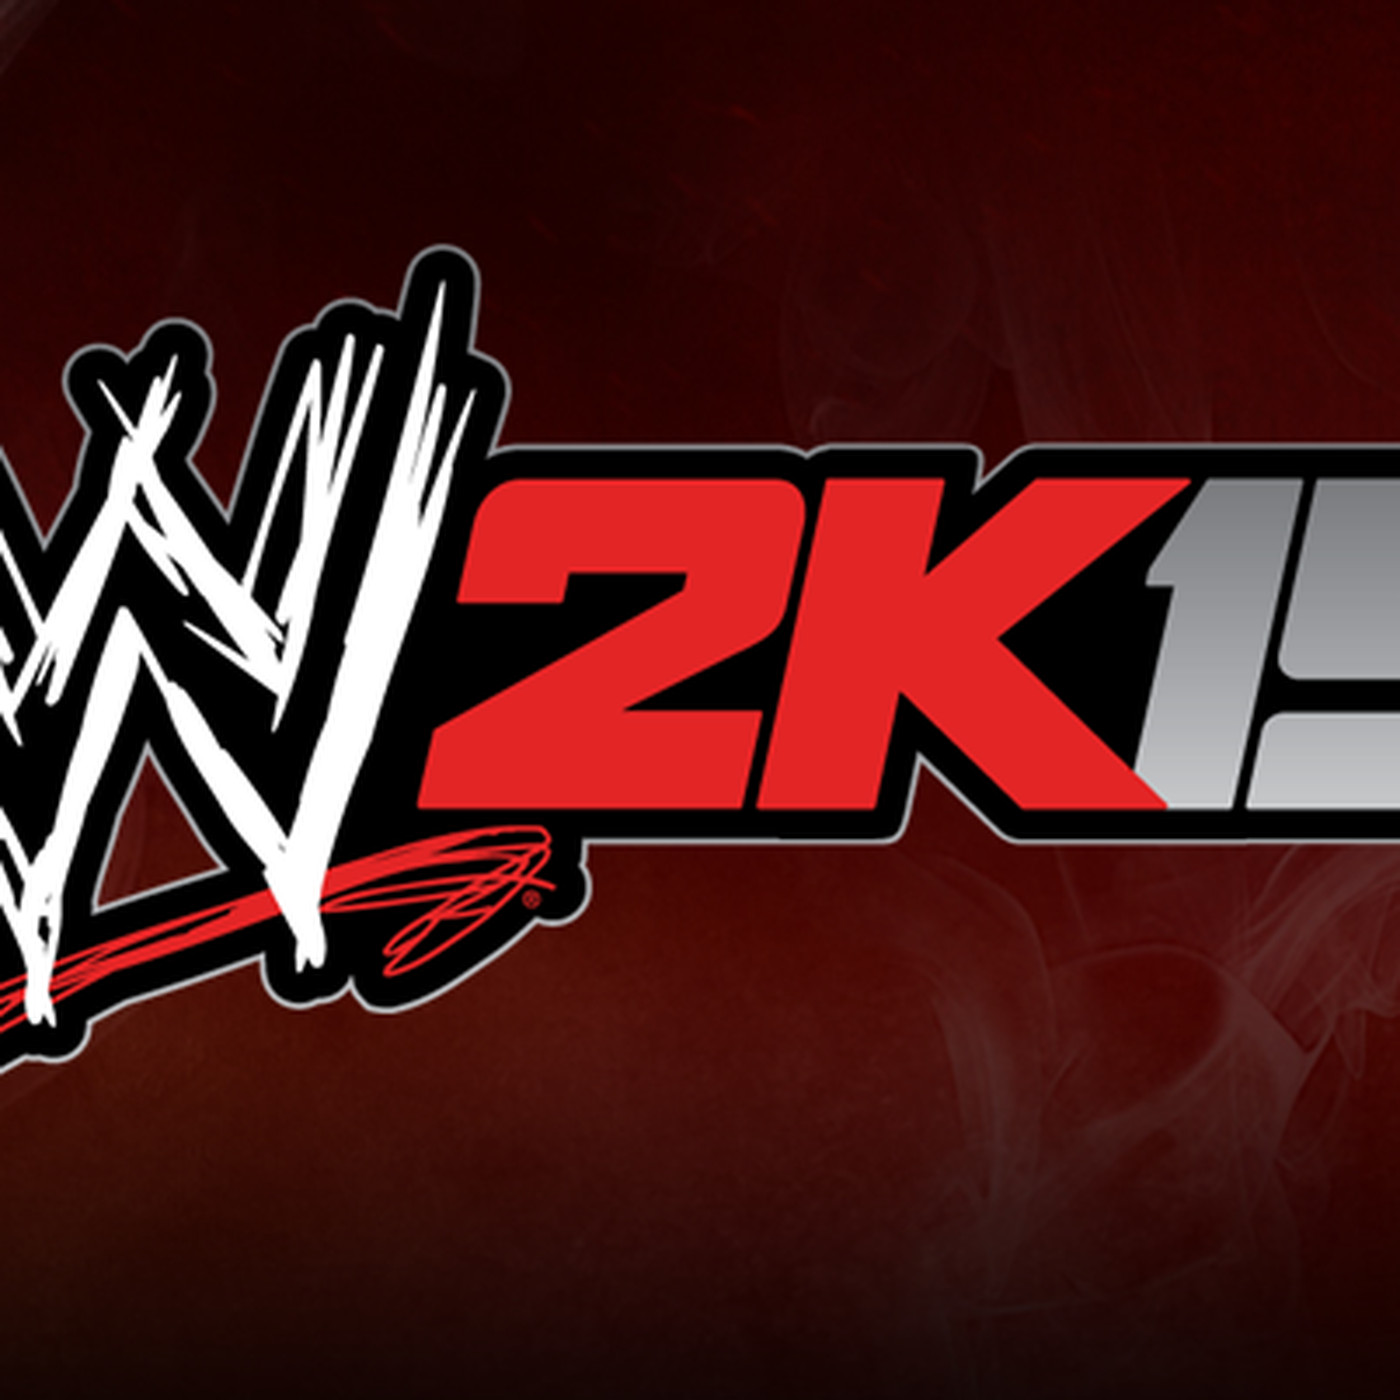 Wwe 2k15 Launching Oct 28 On Ps3 Ps4 Xbox 360 Xbox One Polygon